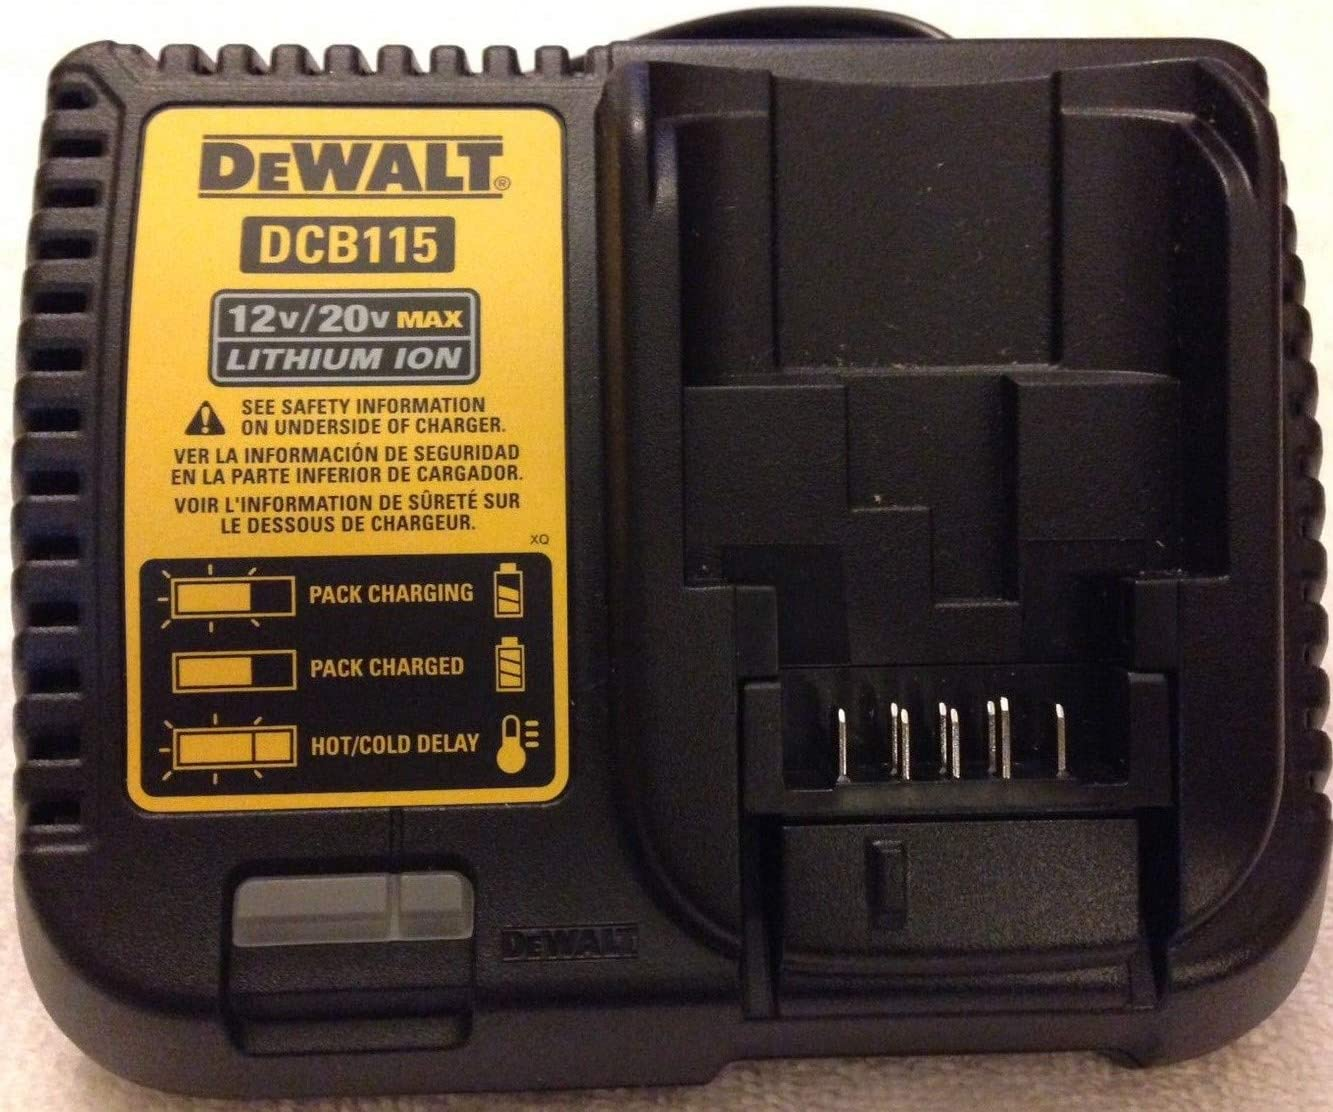 De-Walt DCB115 12V 20V Max Li-ion Battery Charger